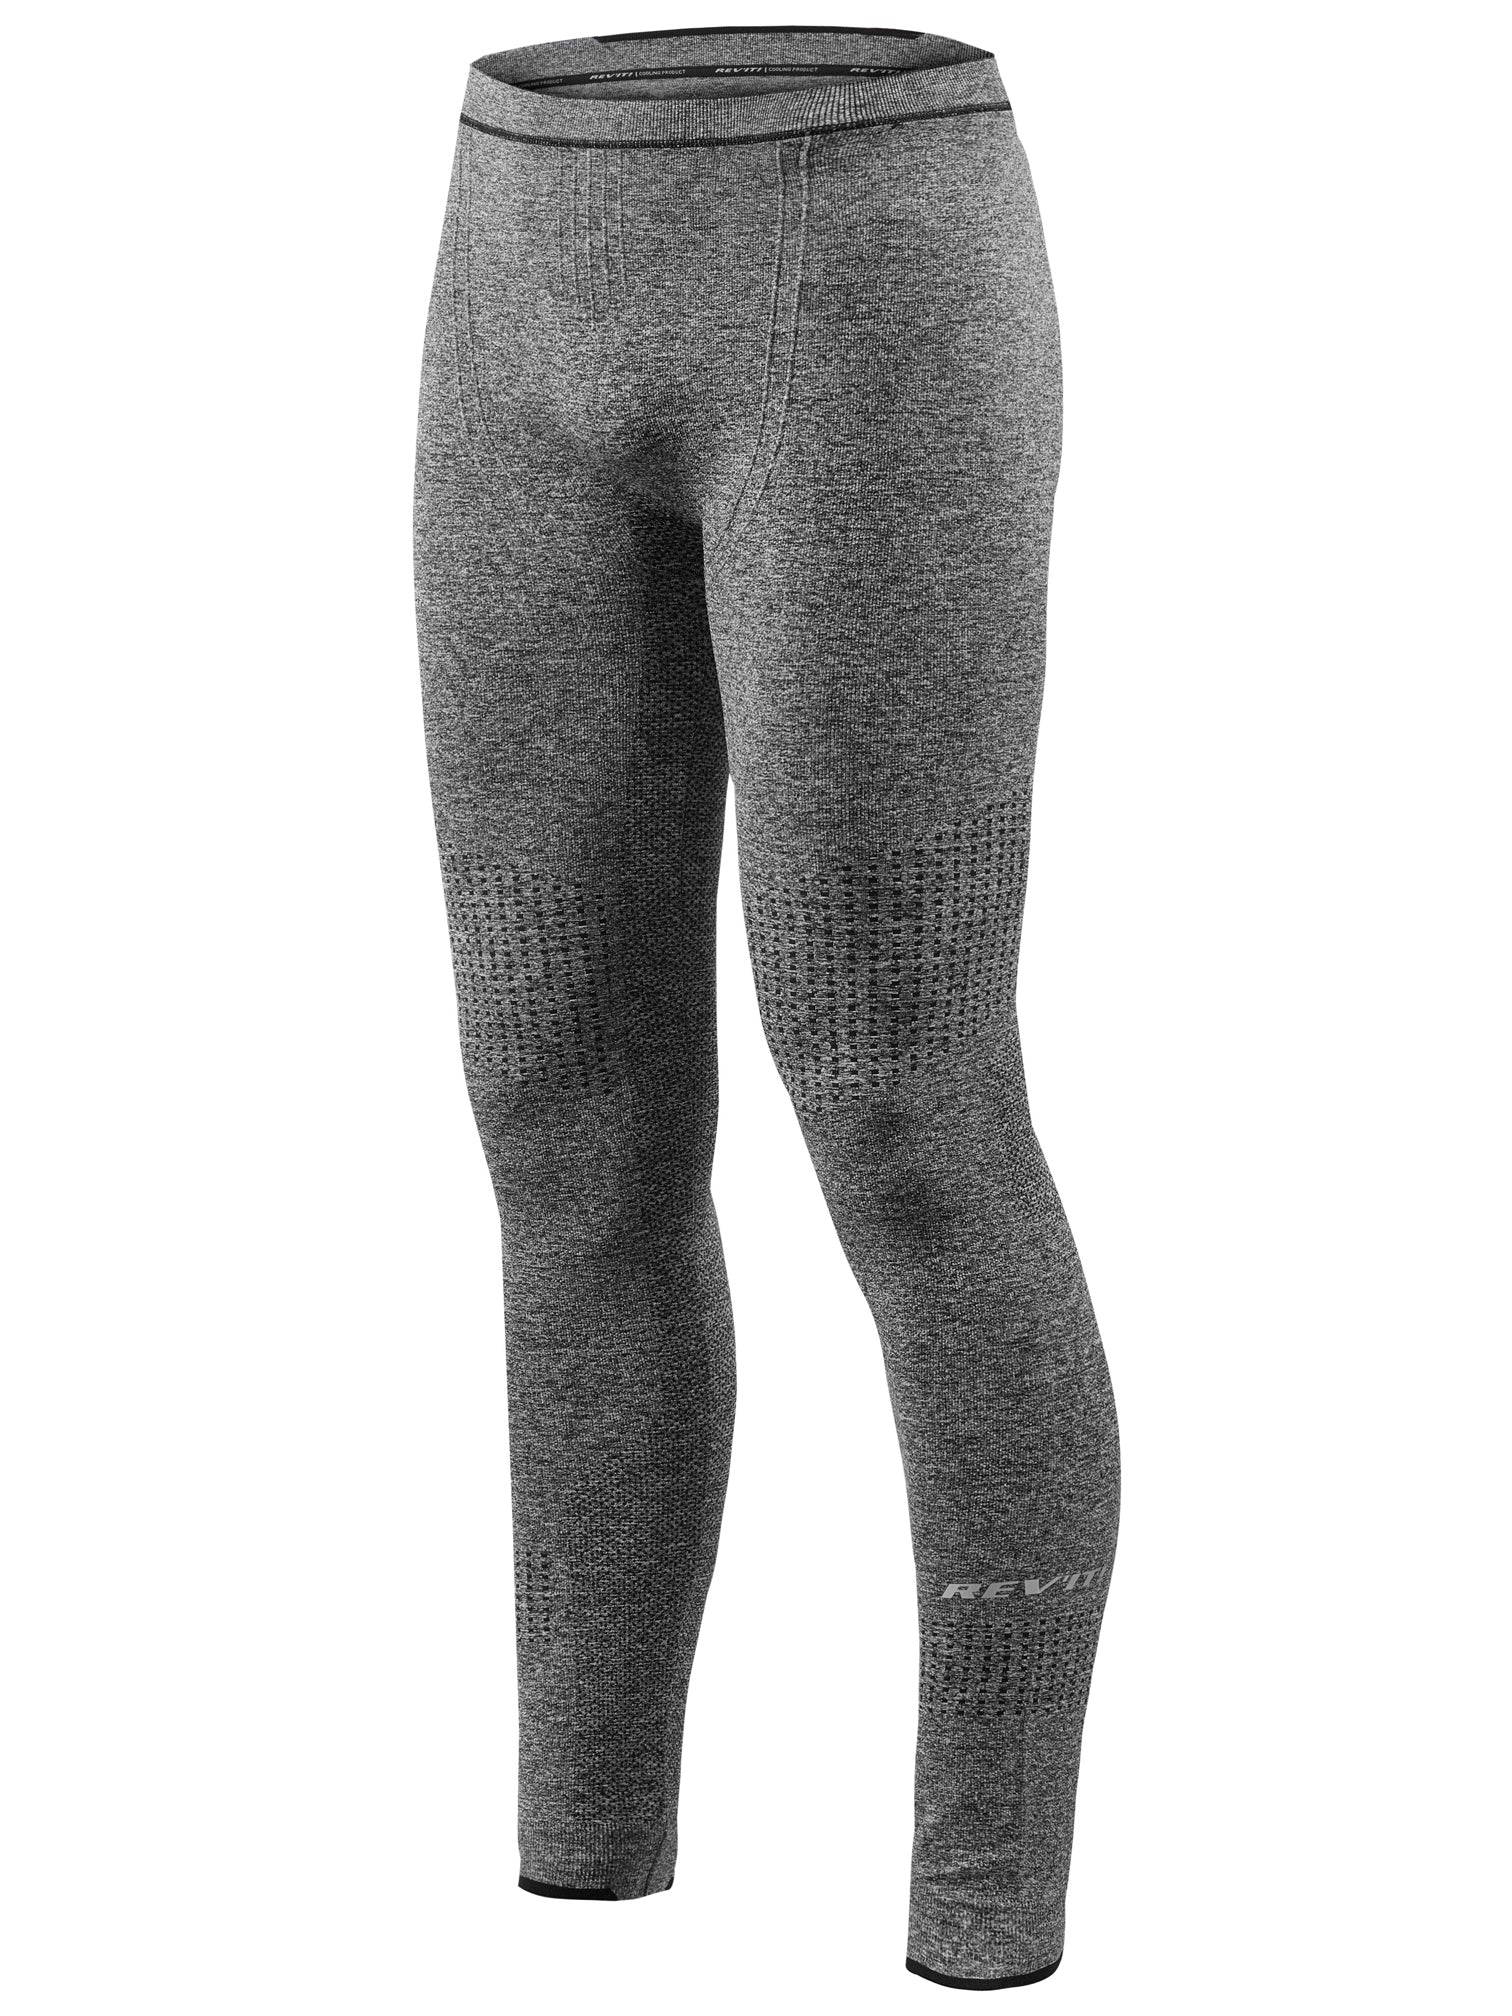 REV'IT Airborne LL Men's Base Layer Pants - 421 Moto Gear